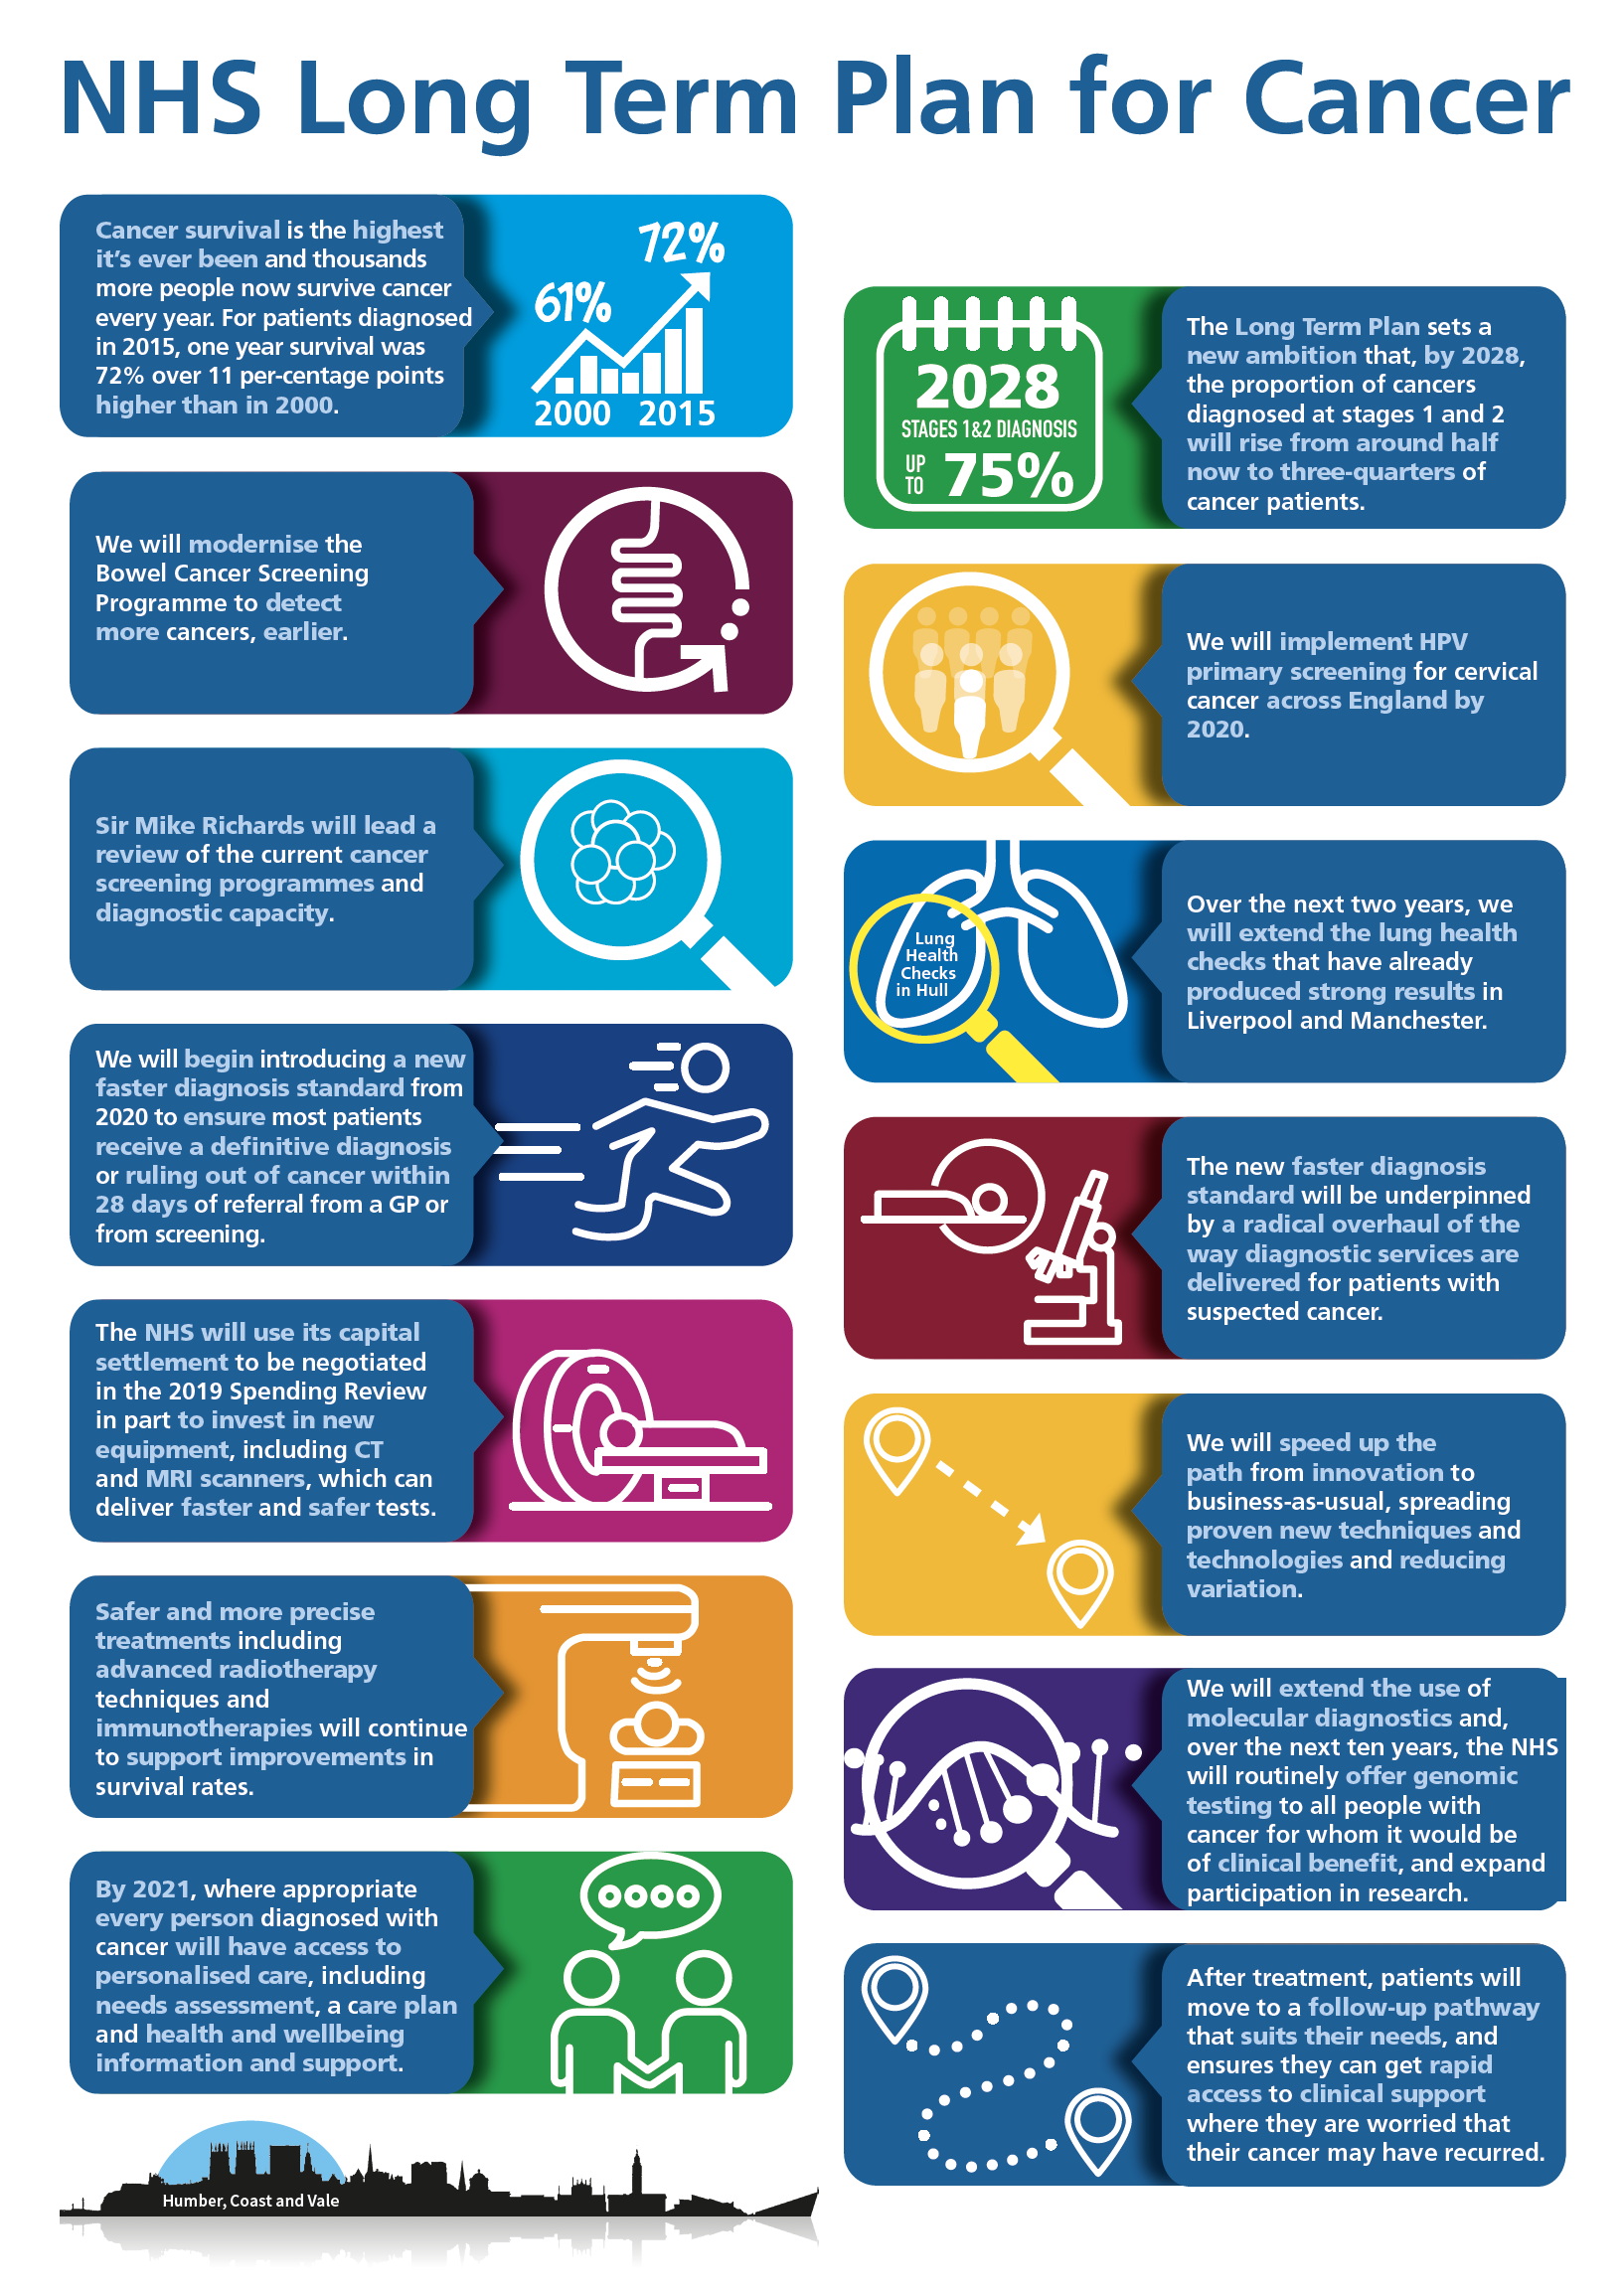 NHS Long Term Plan for Cancer Infographic